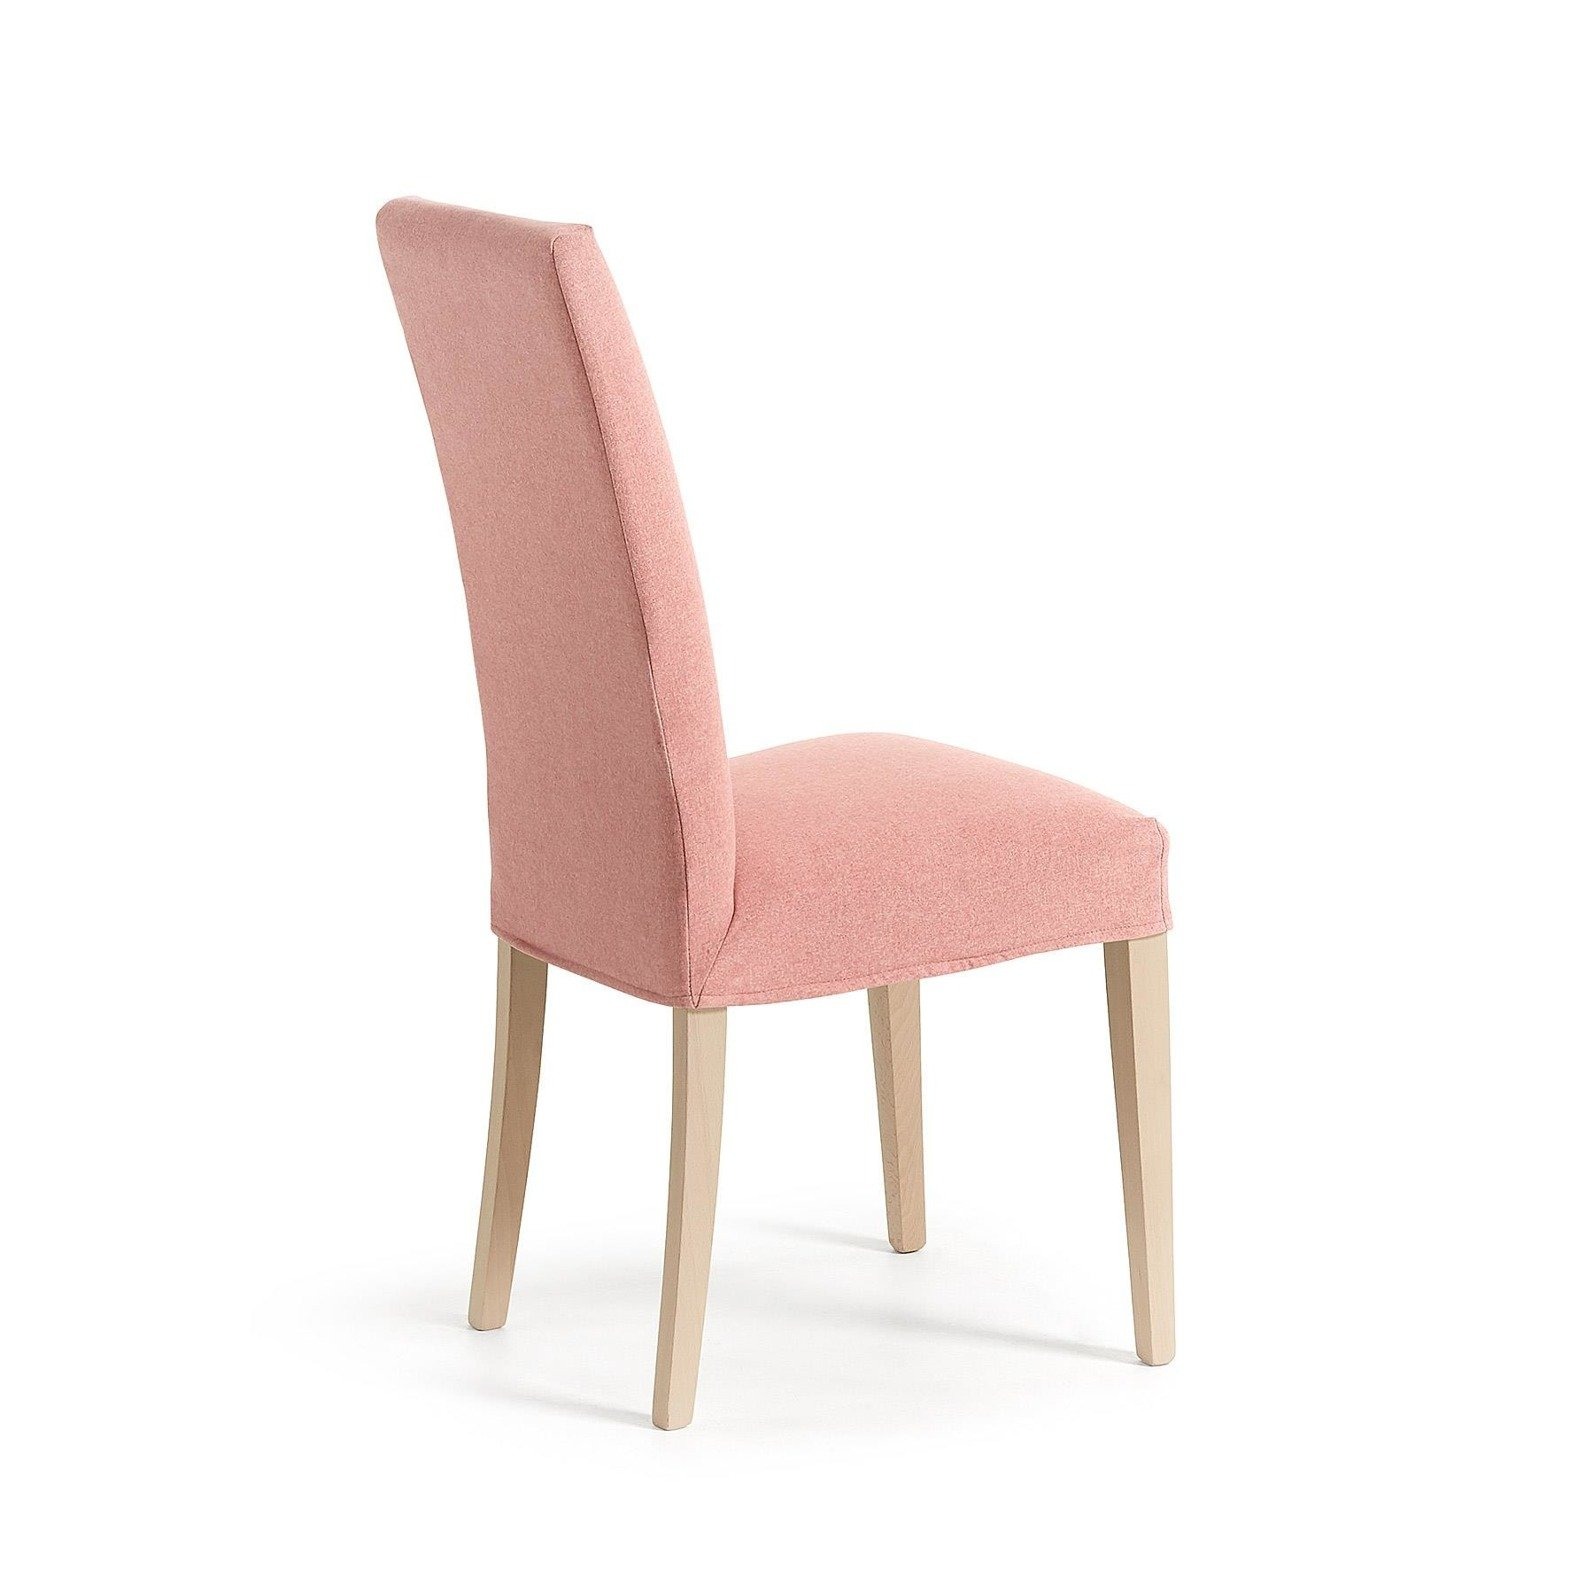 MERCEDE Chair removable natural wood fabric pink